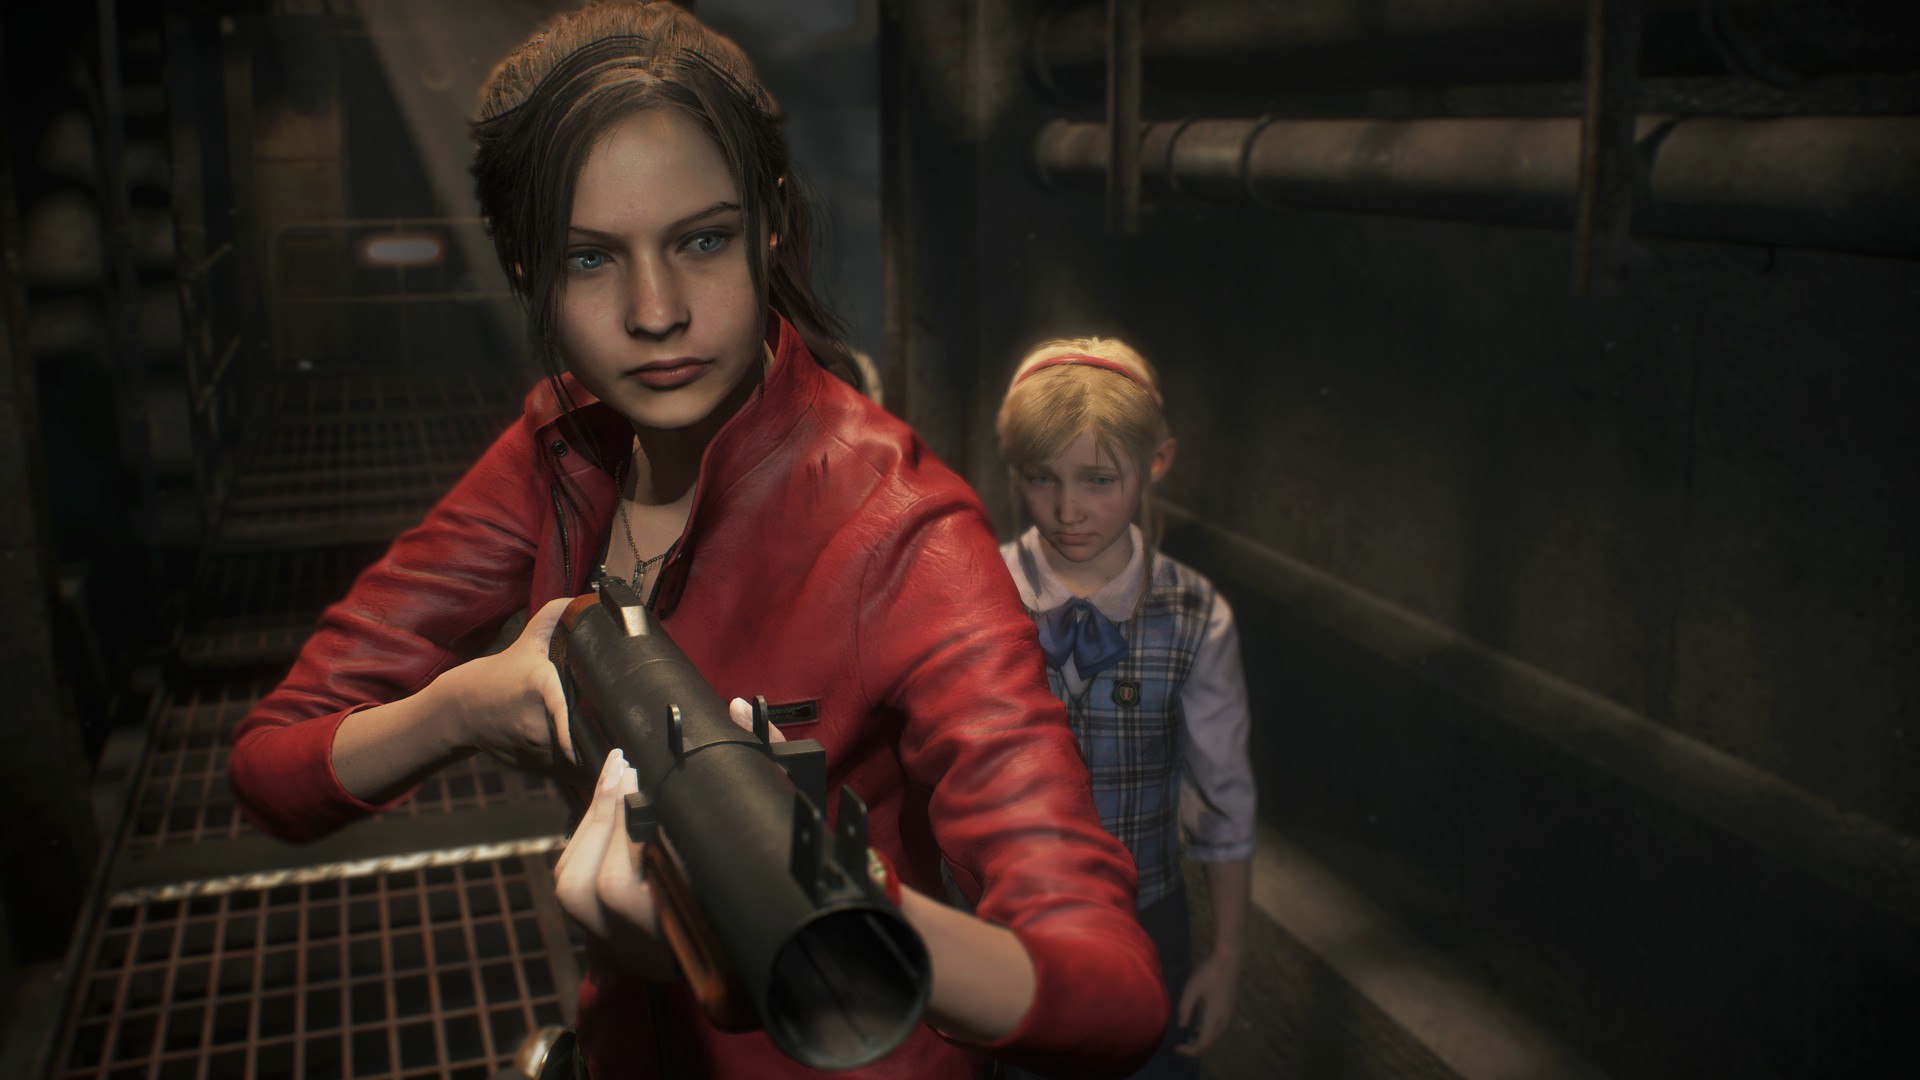 Claire in Resident Evil 2 Remake